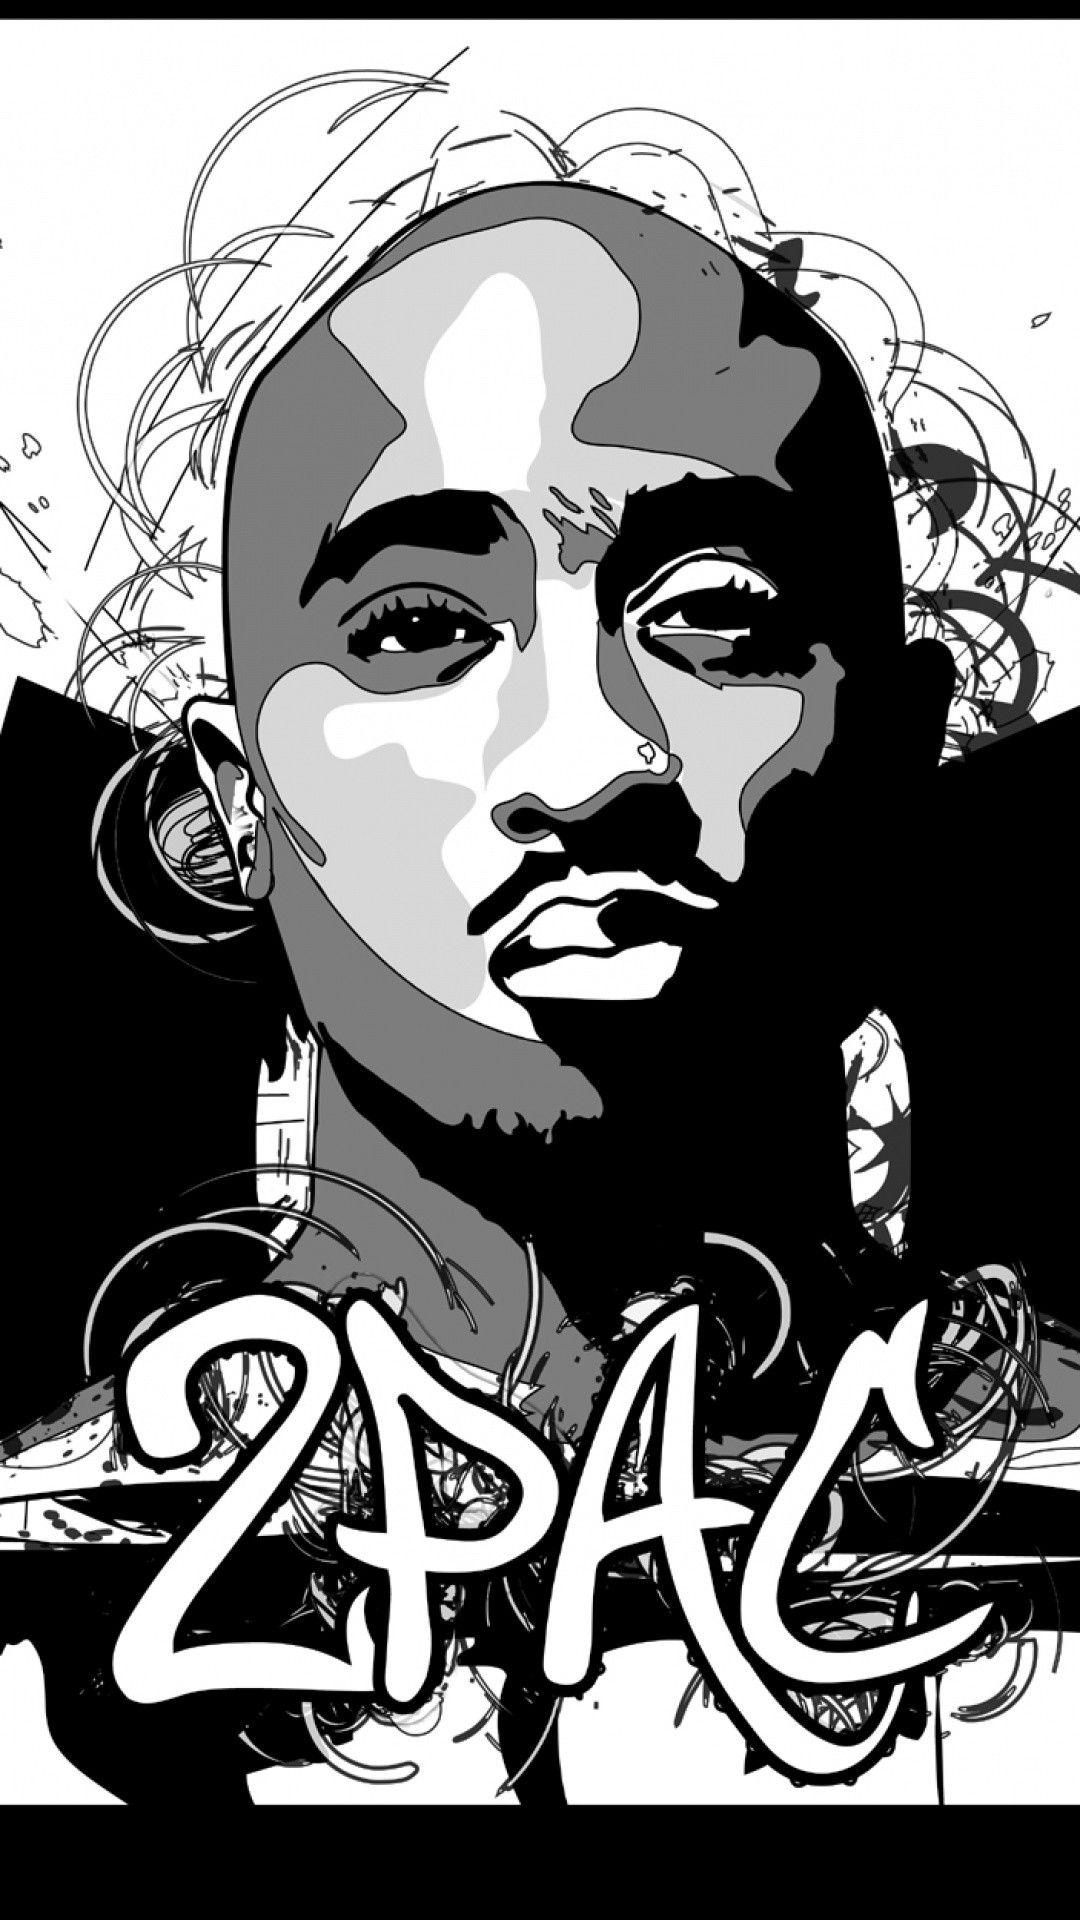 2Pac Wallpaper for iPhone (65+ images)